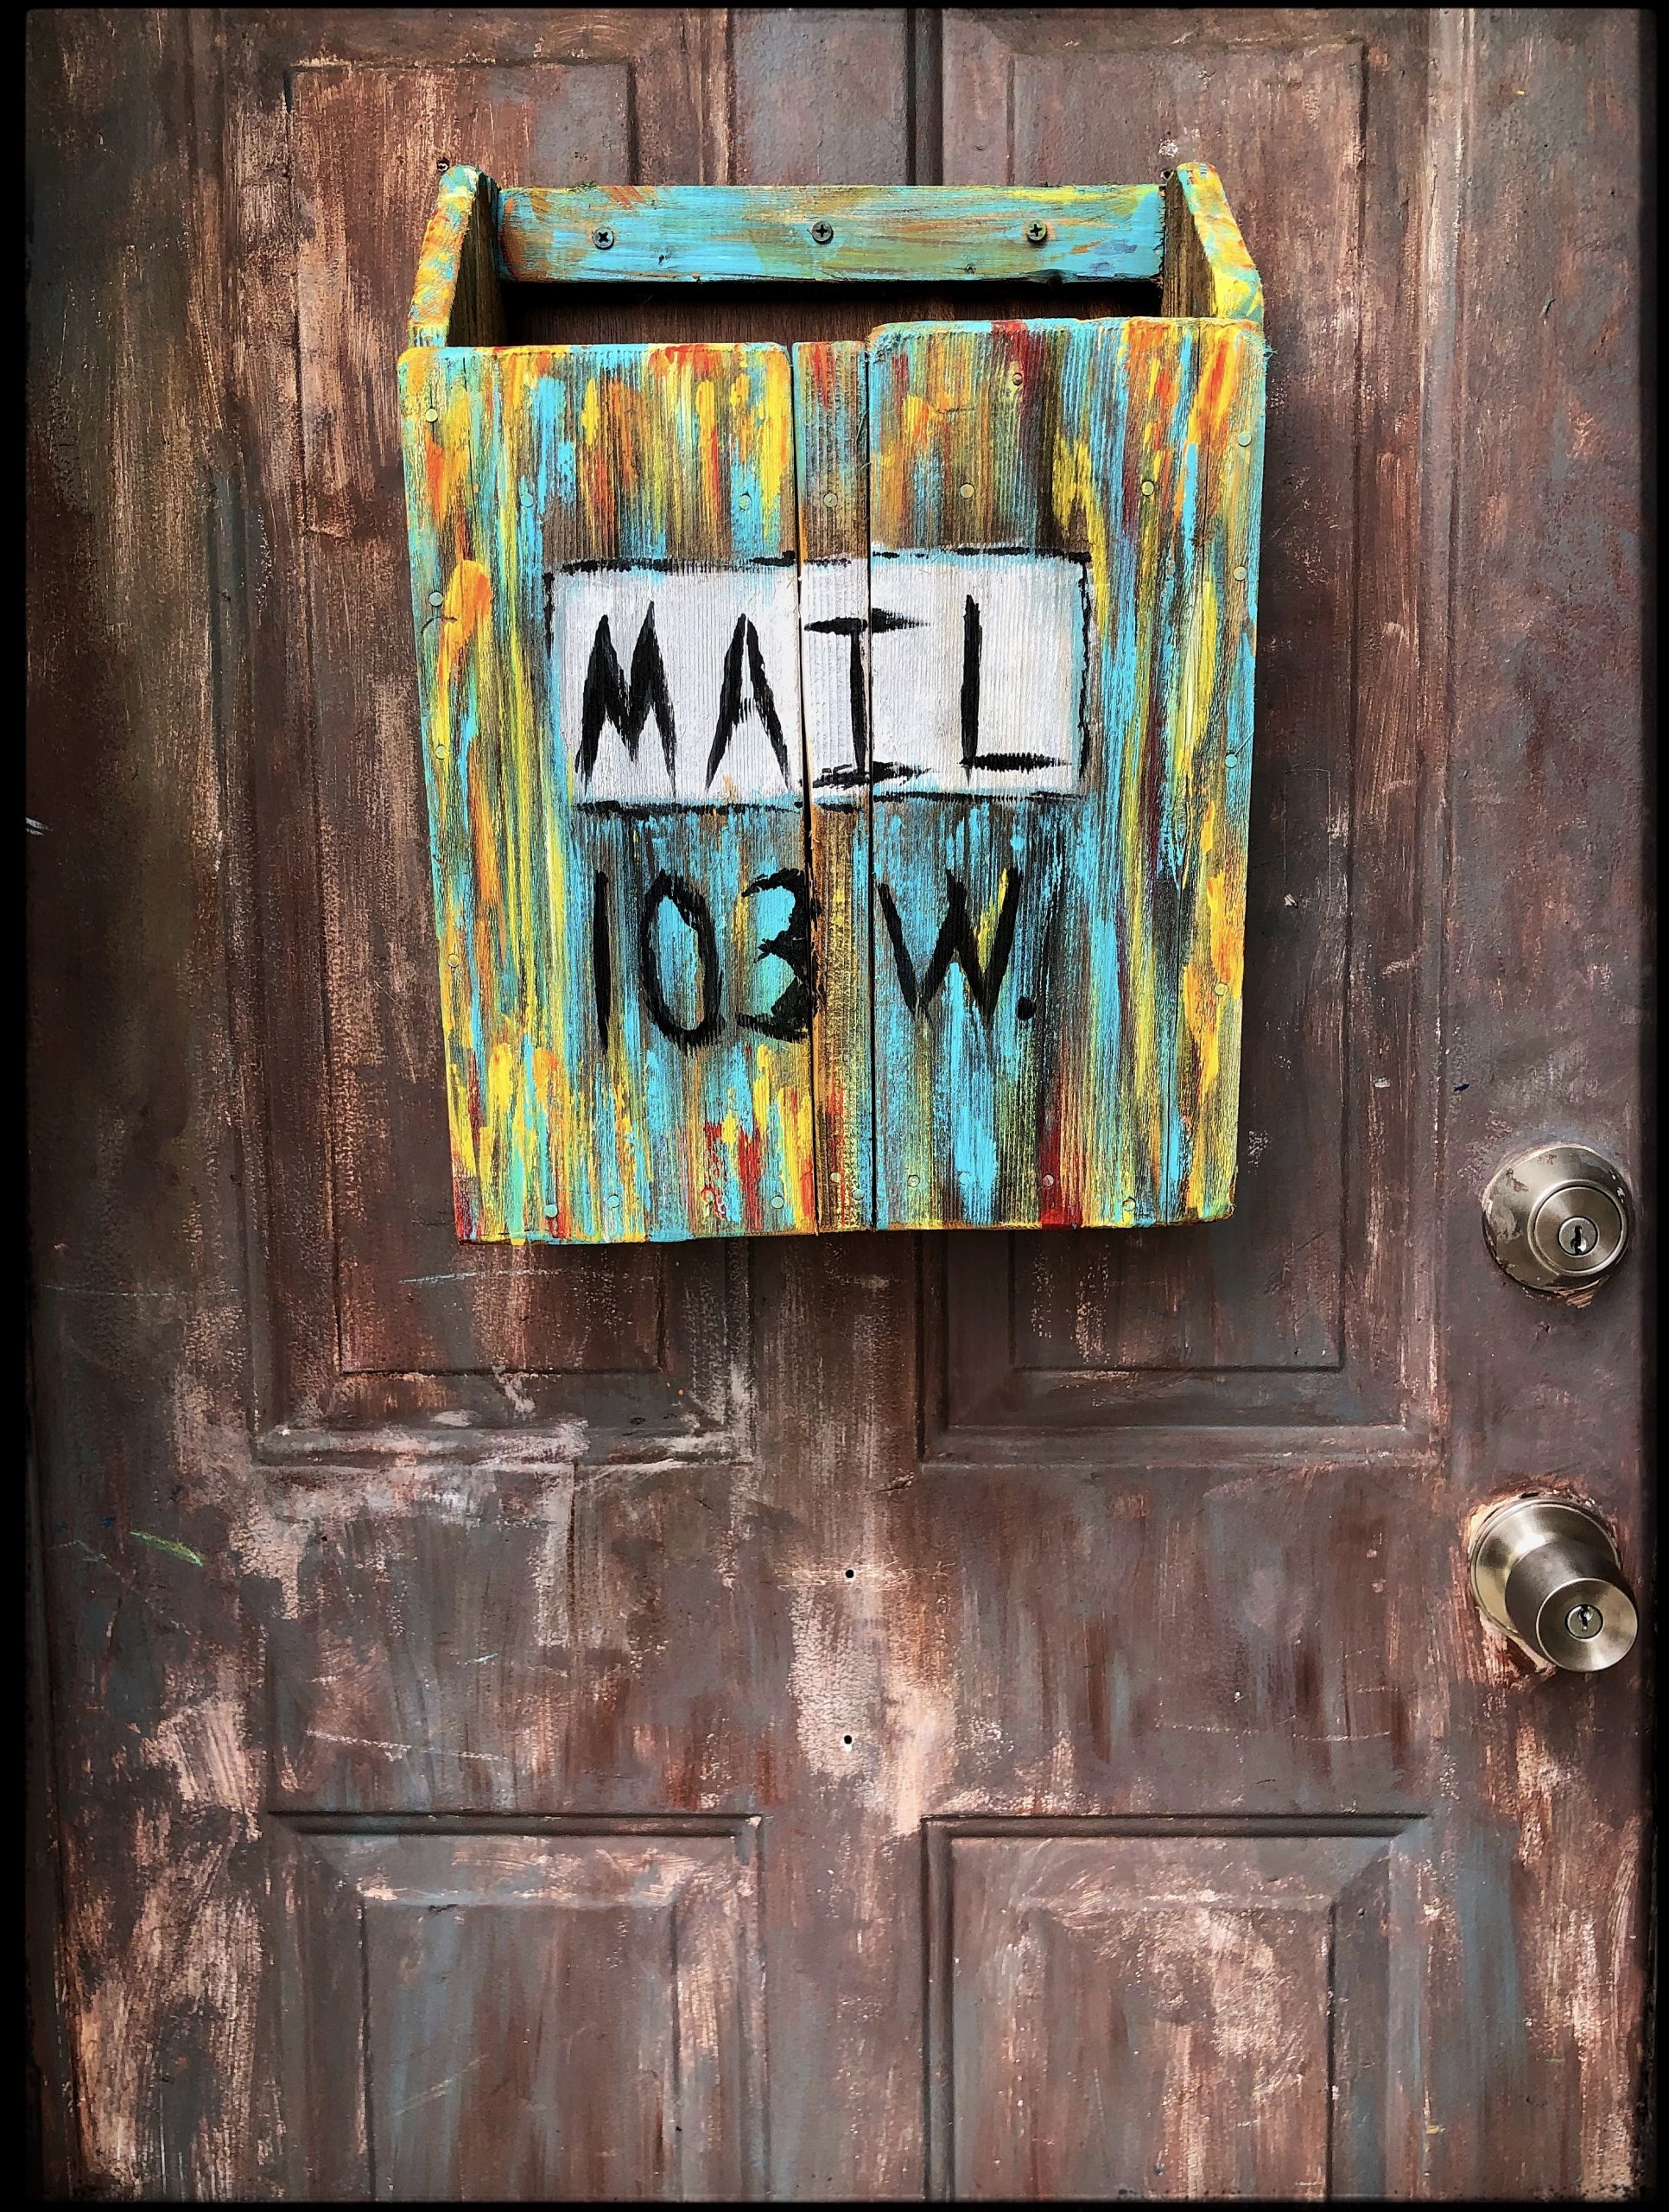 Mail Box Representing a Domain Name